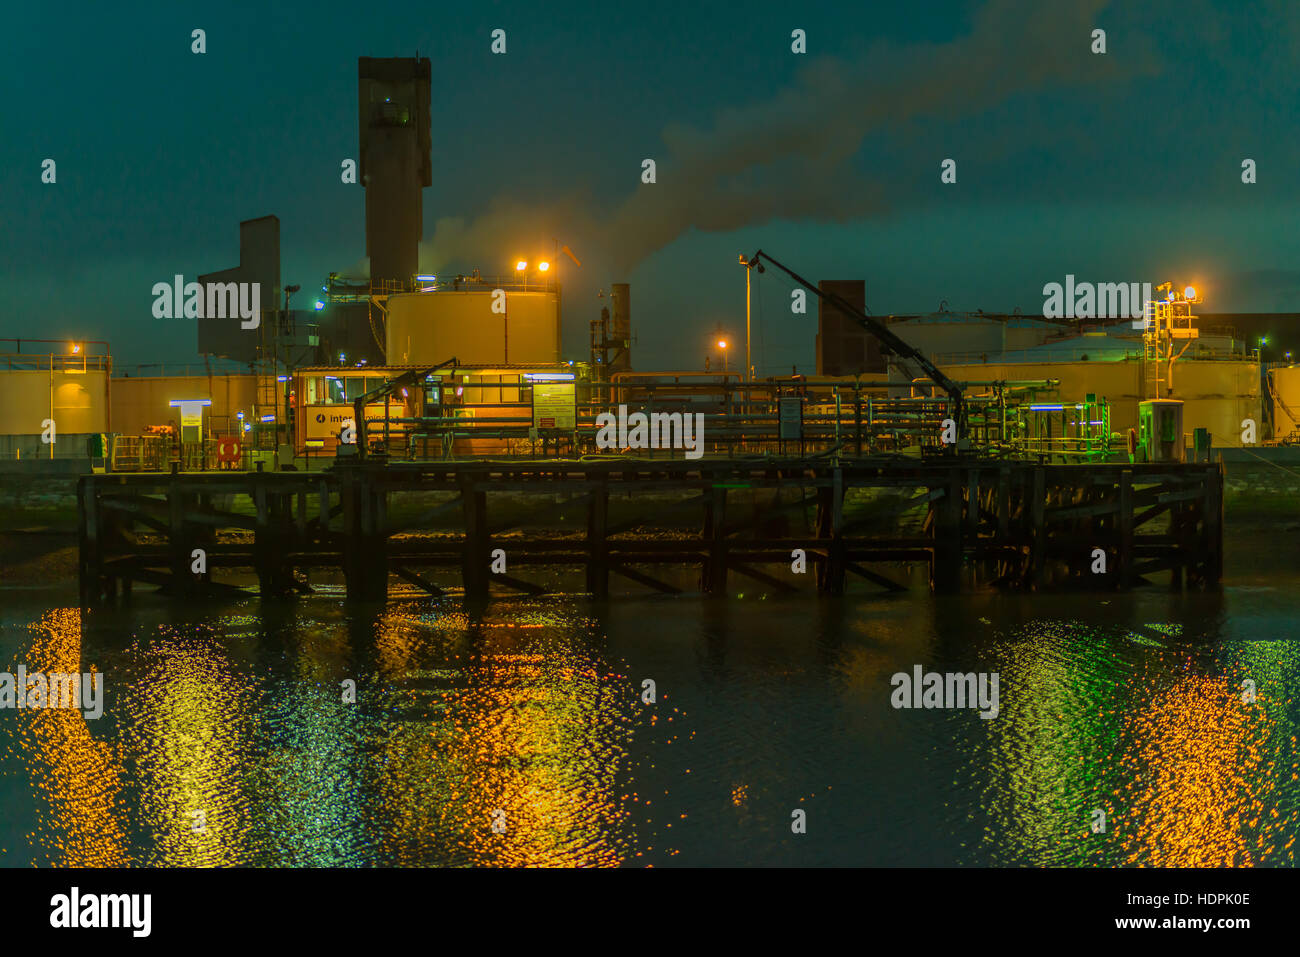 Inter Terminal Jetty at Seal Sands, Middlesbrough, Cleveland, UK - Stock Image